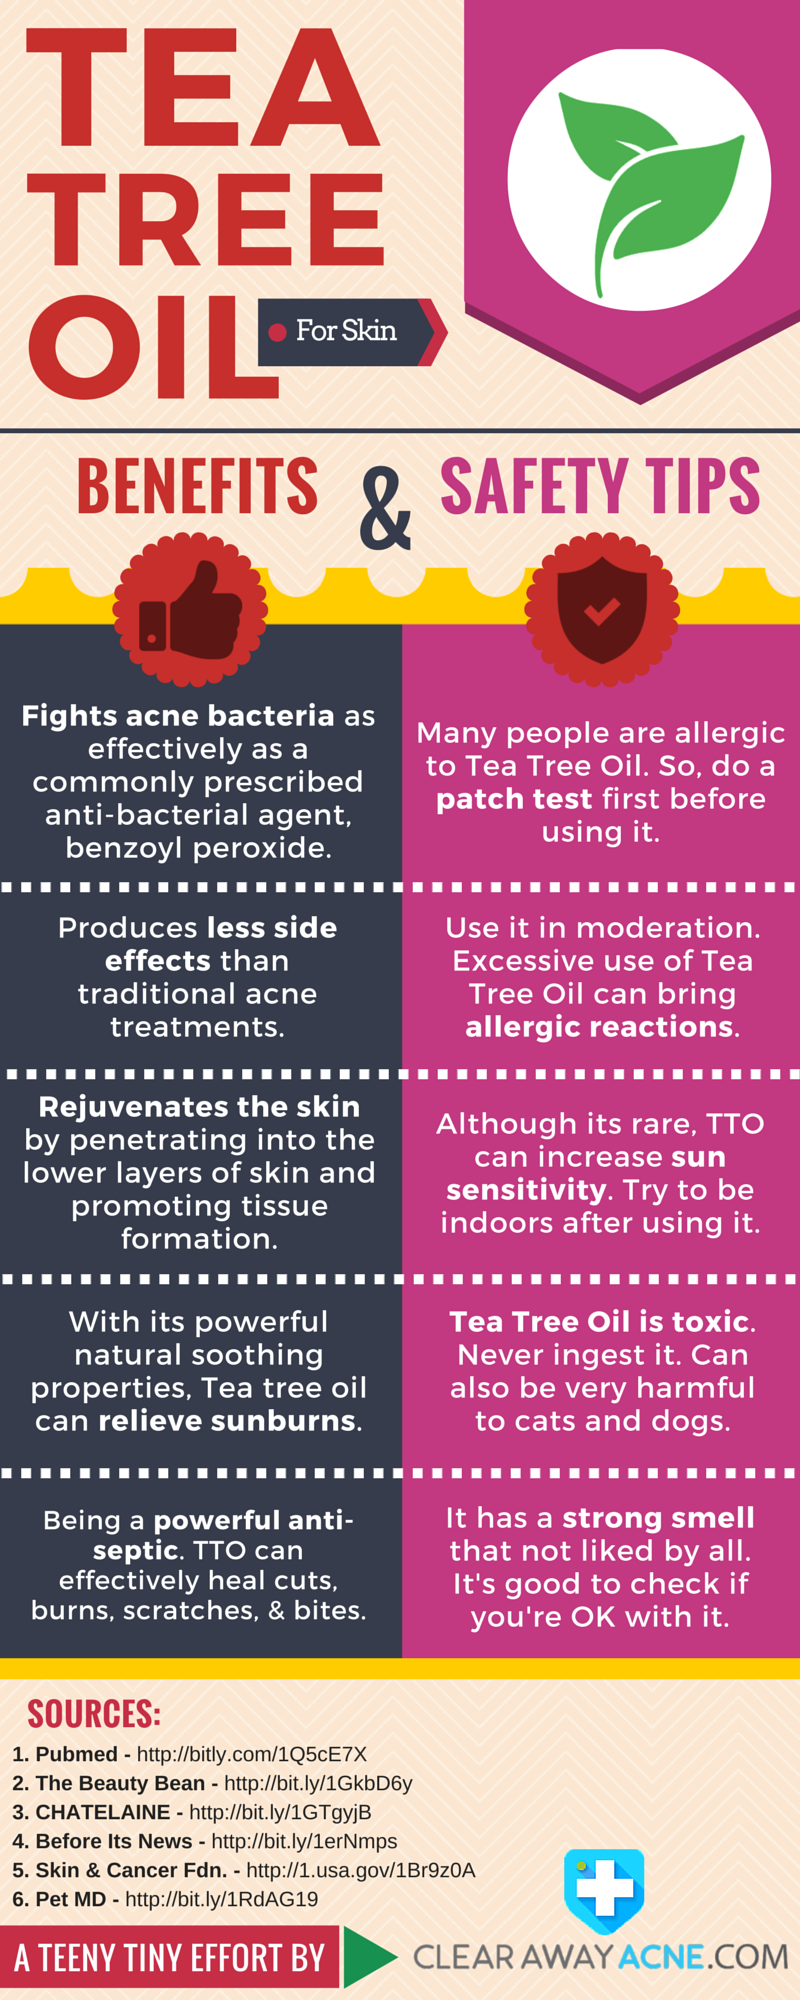 Tea-Tree-Oil-For-Acne-and-Skin-Care-Benefits-and-Safety-Tips-infographic